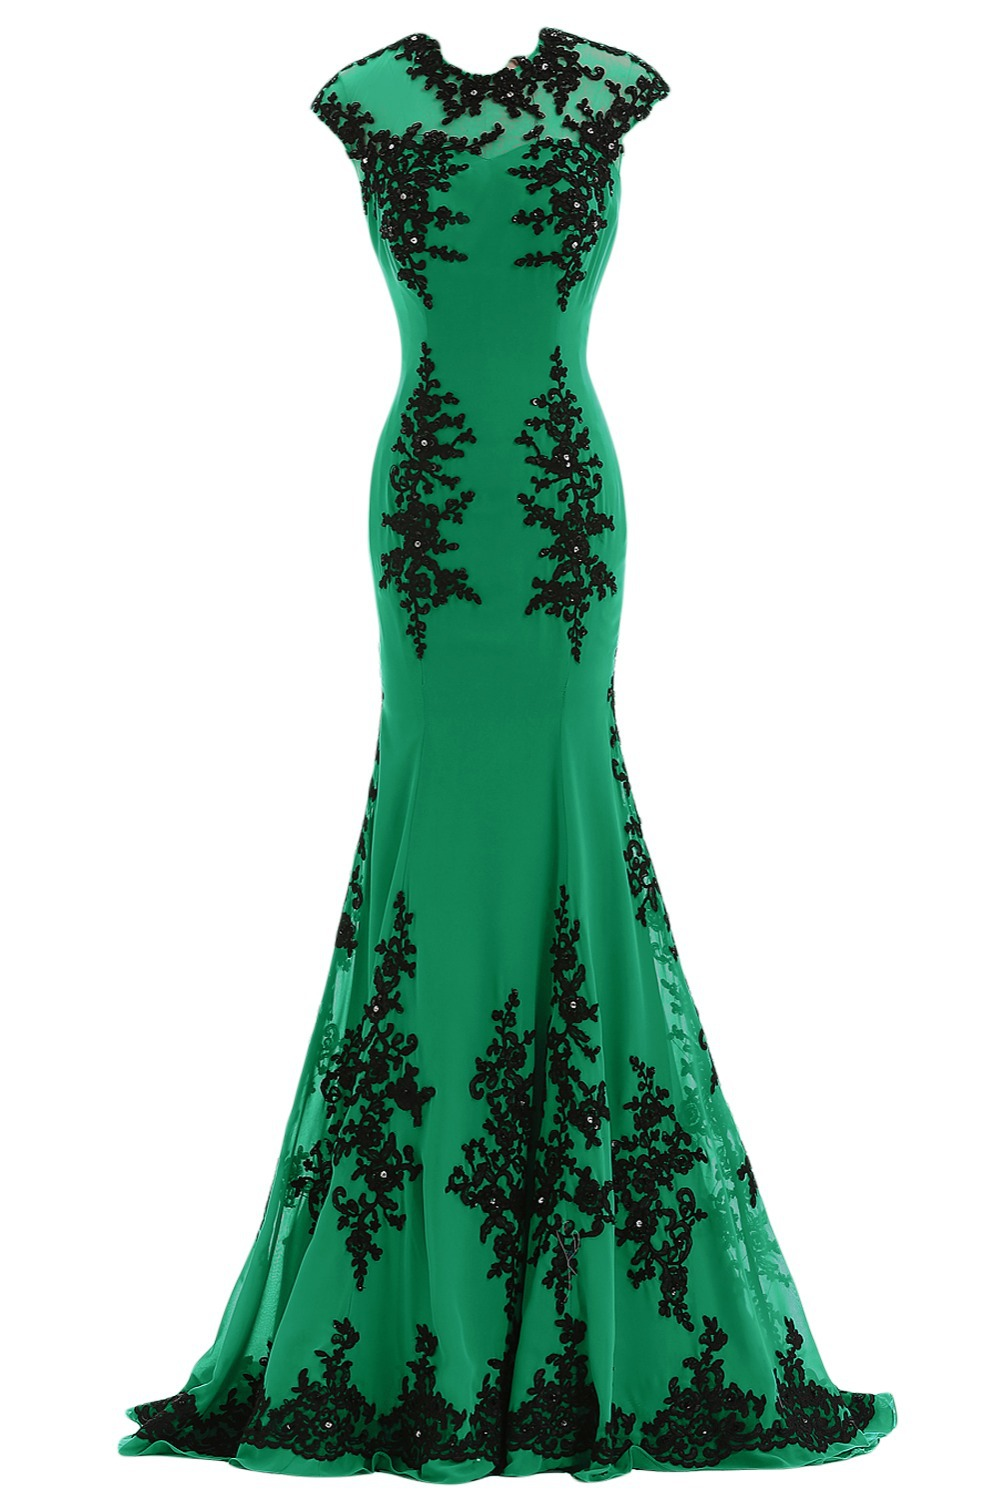 US $16.16 21618 vestido de noiva Emerald Green Arabic Style Evening gown  Mermaid Black lace Applique Sample mother of the bride dressesMother of  the